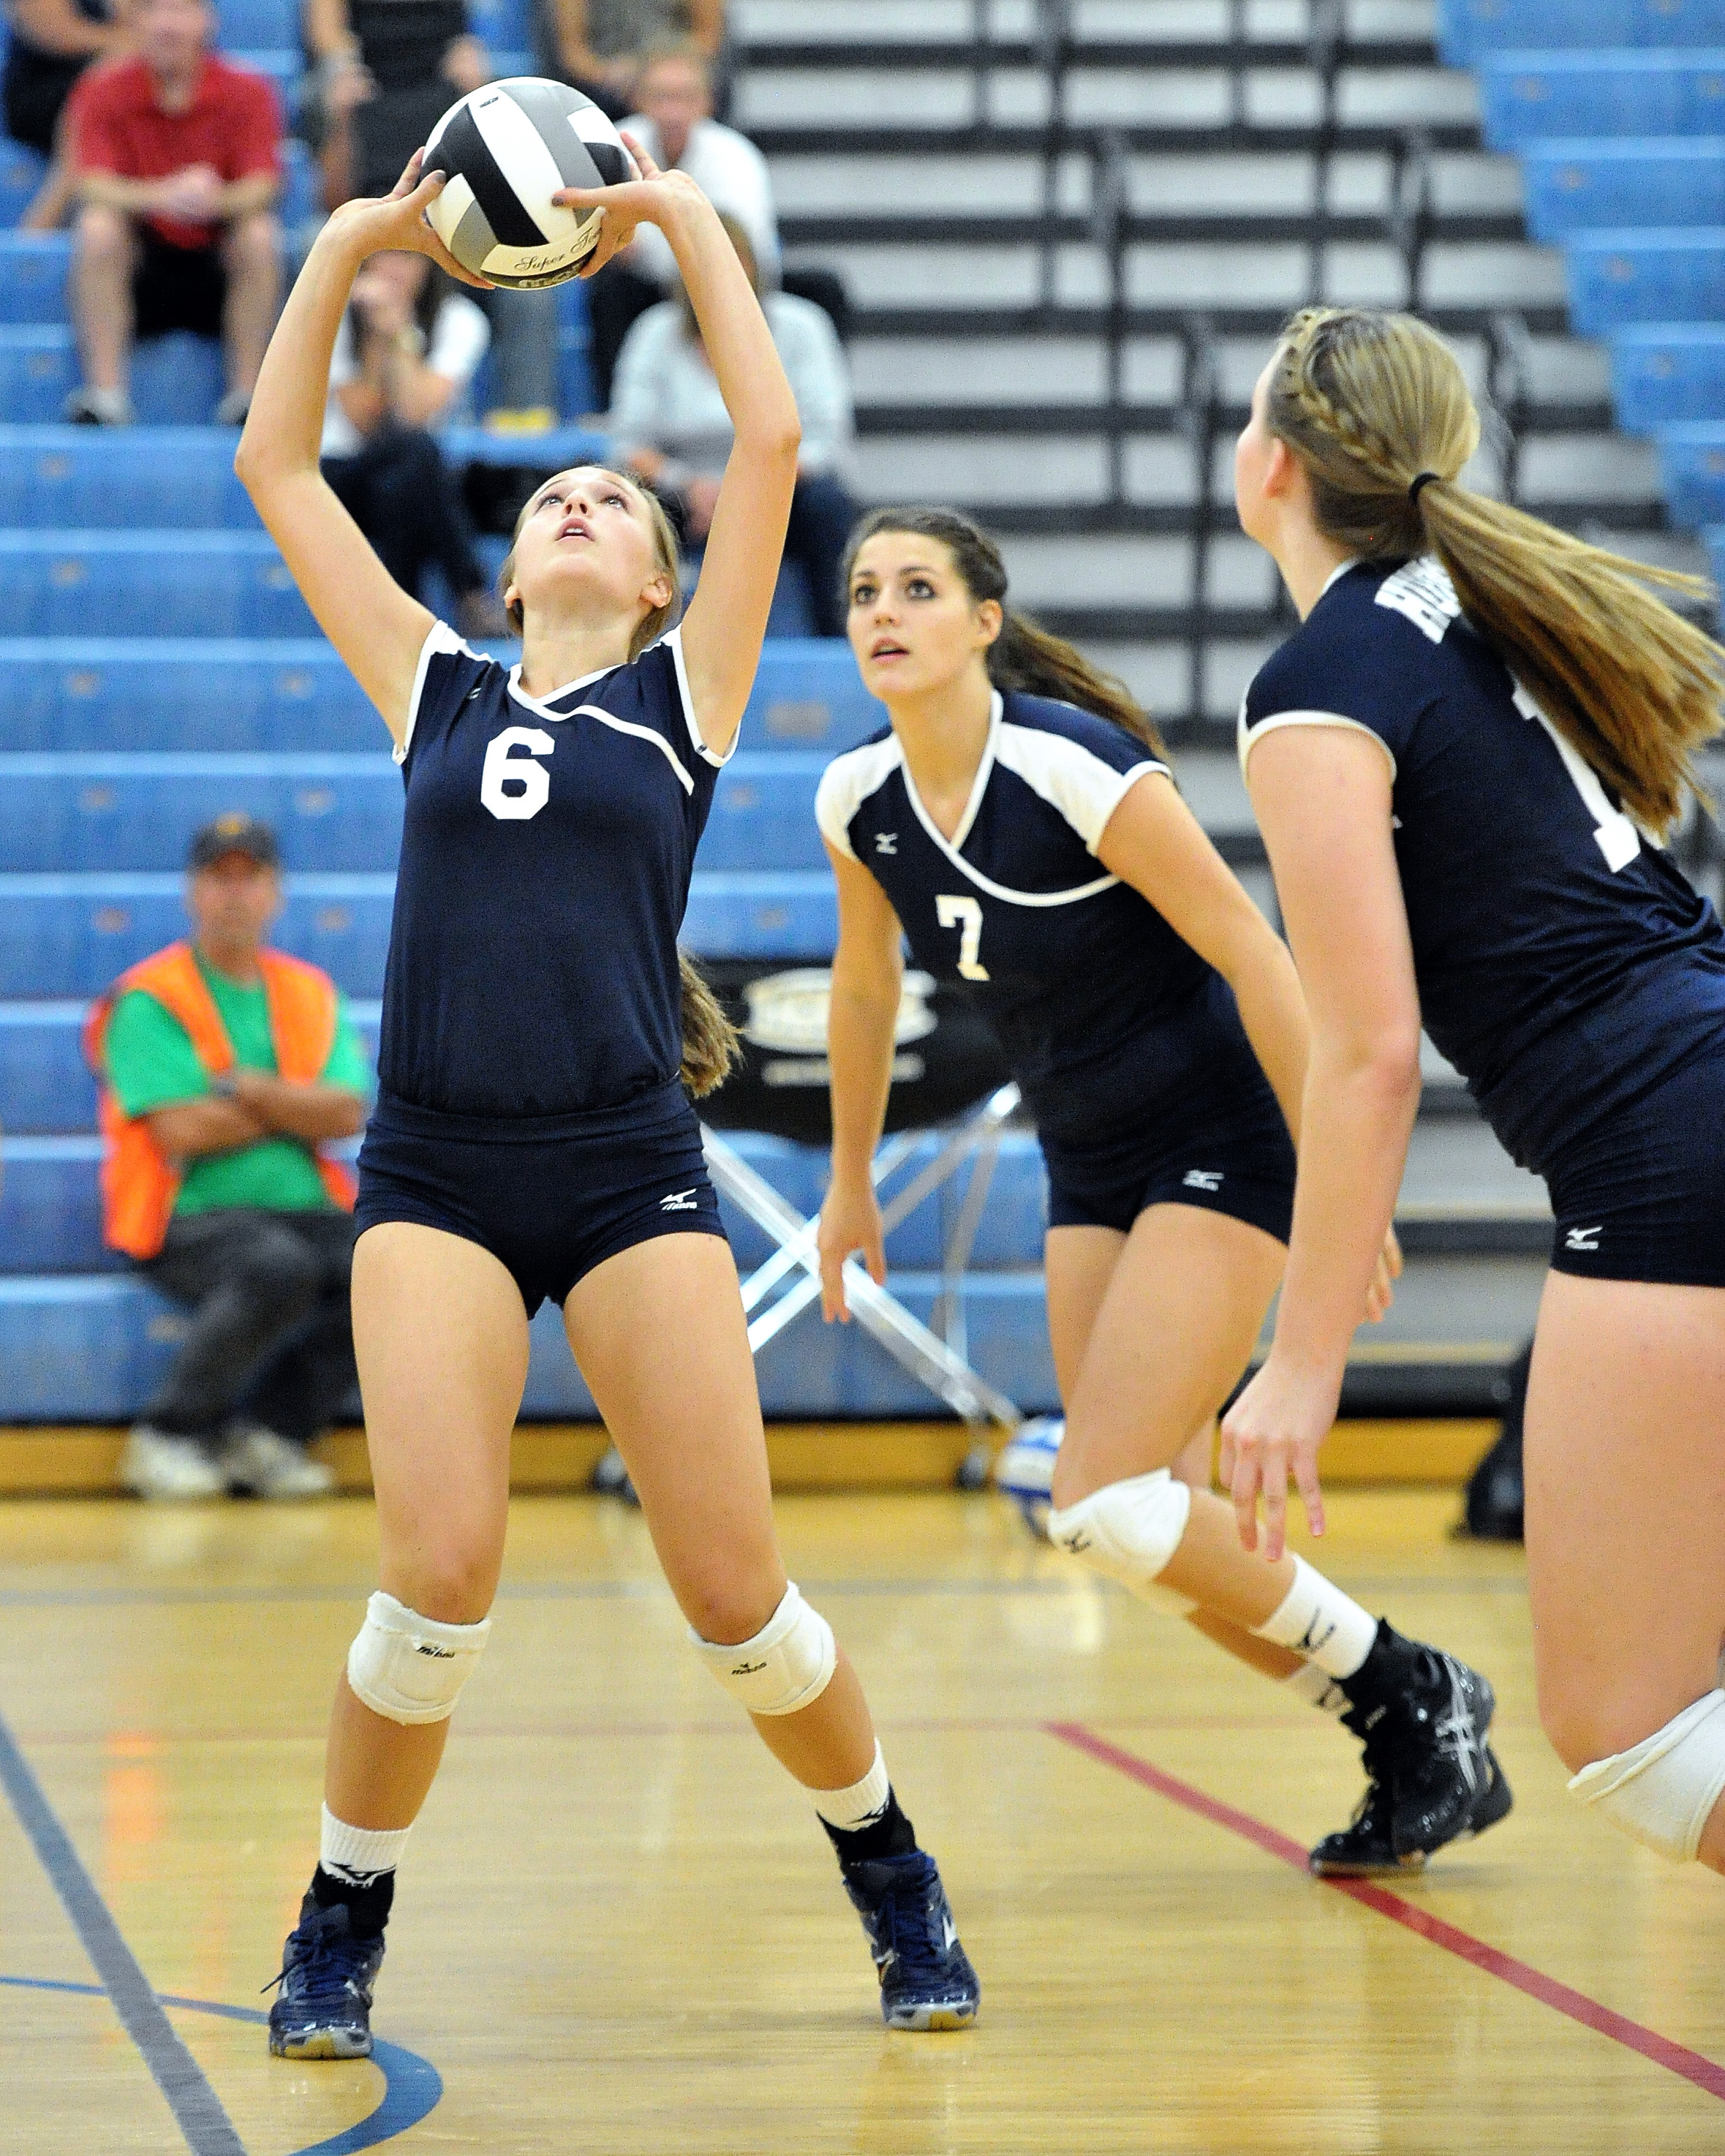 Bibliography - The Physics of Volleyball